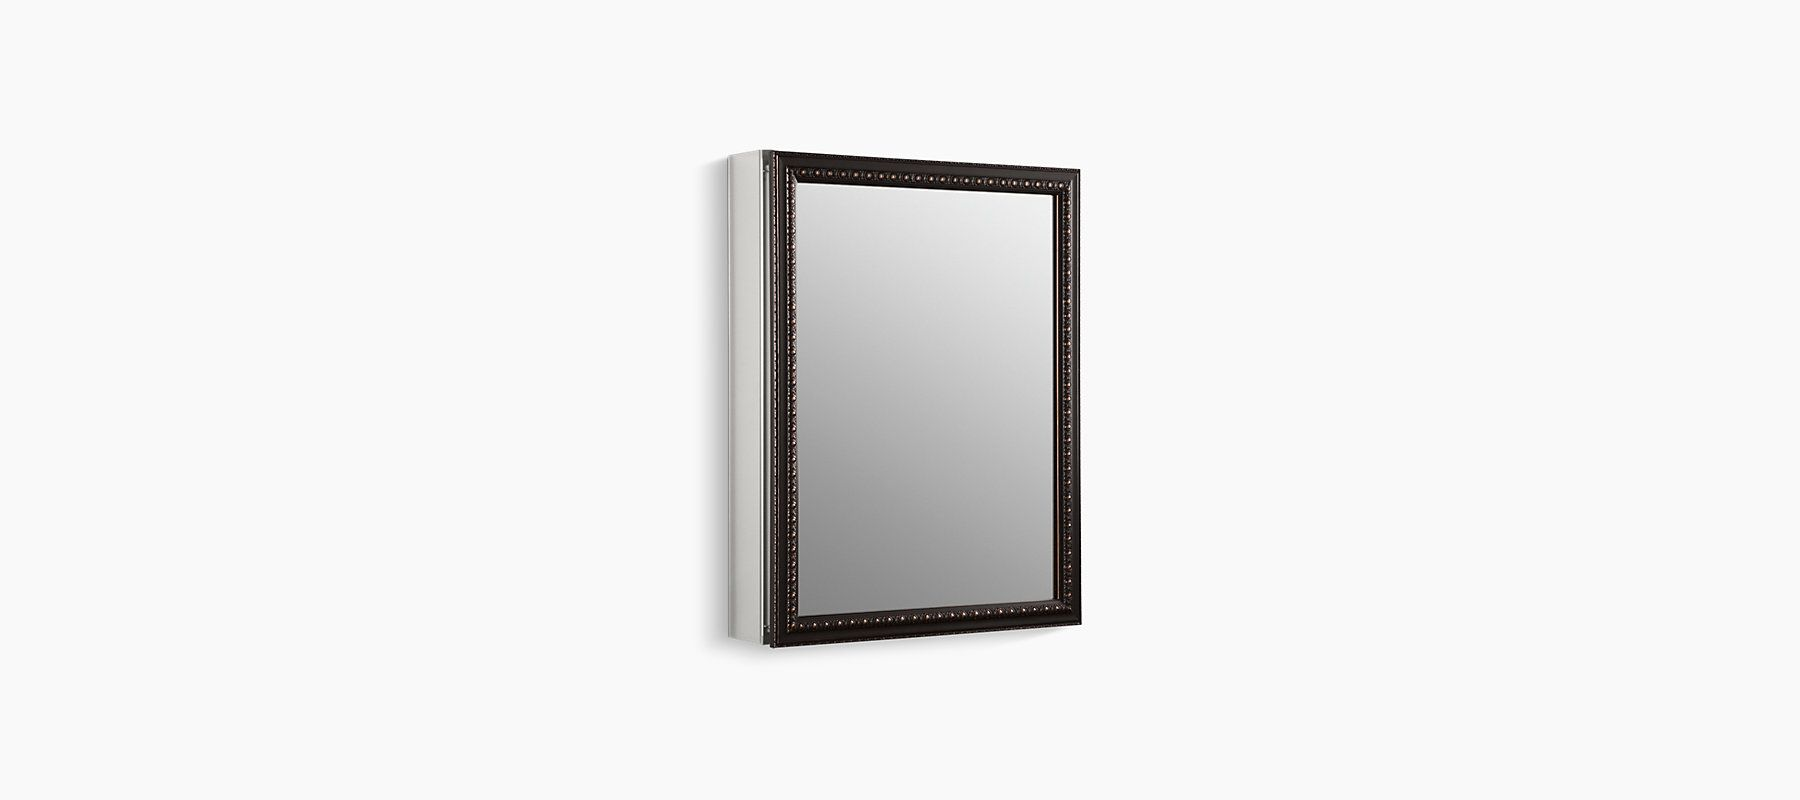 Kohler 20 In X 26 In H Recessed Or Surface Mount Mirrored Medicine Cabinet In Oil Rubbed Bronze K 2967 Br1 The Home Depot Restroom Decor Tan Bathroom Ideas Diy Bathroom Makeover